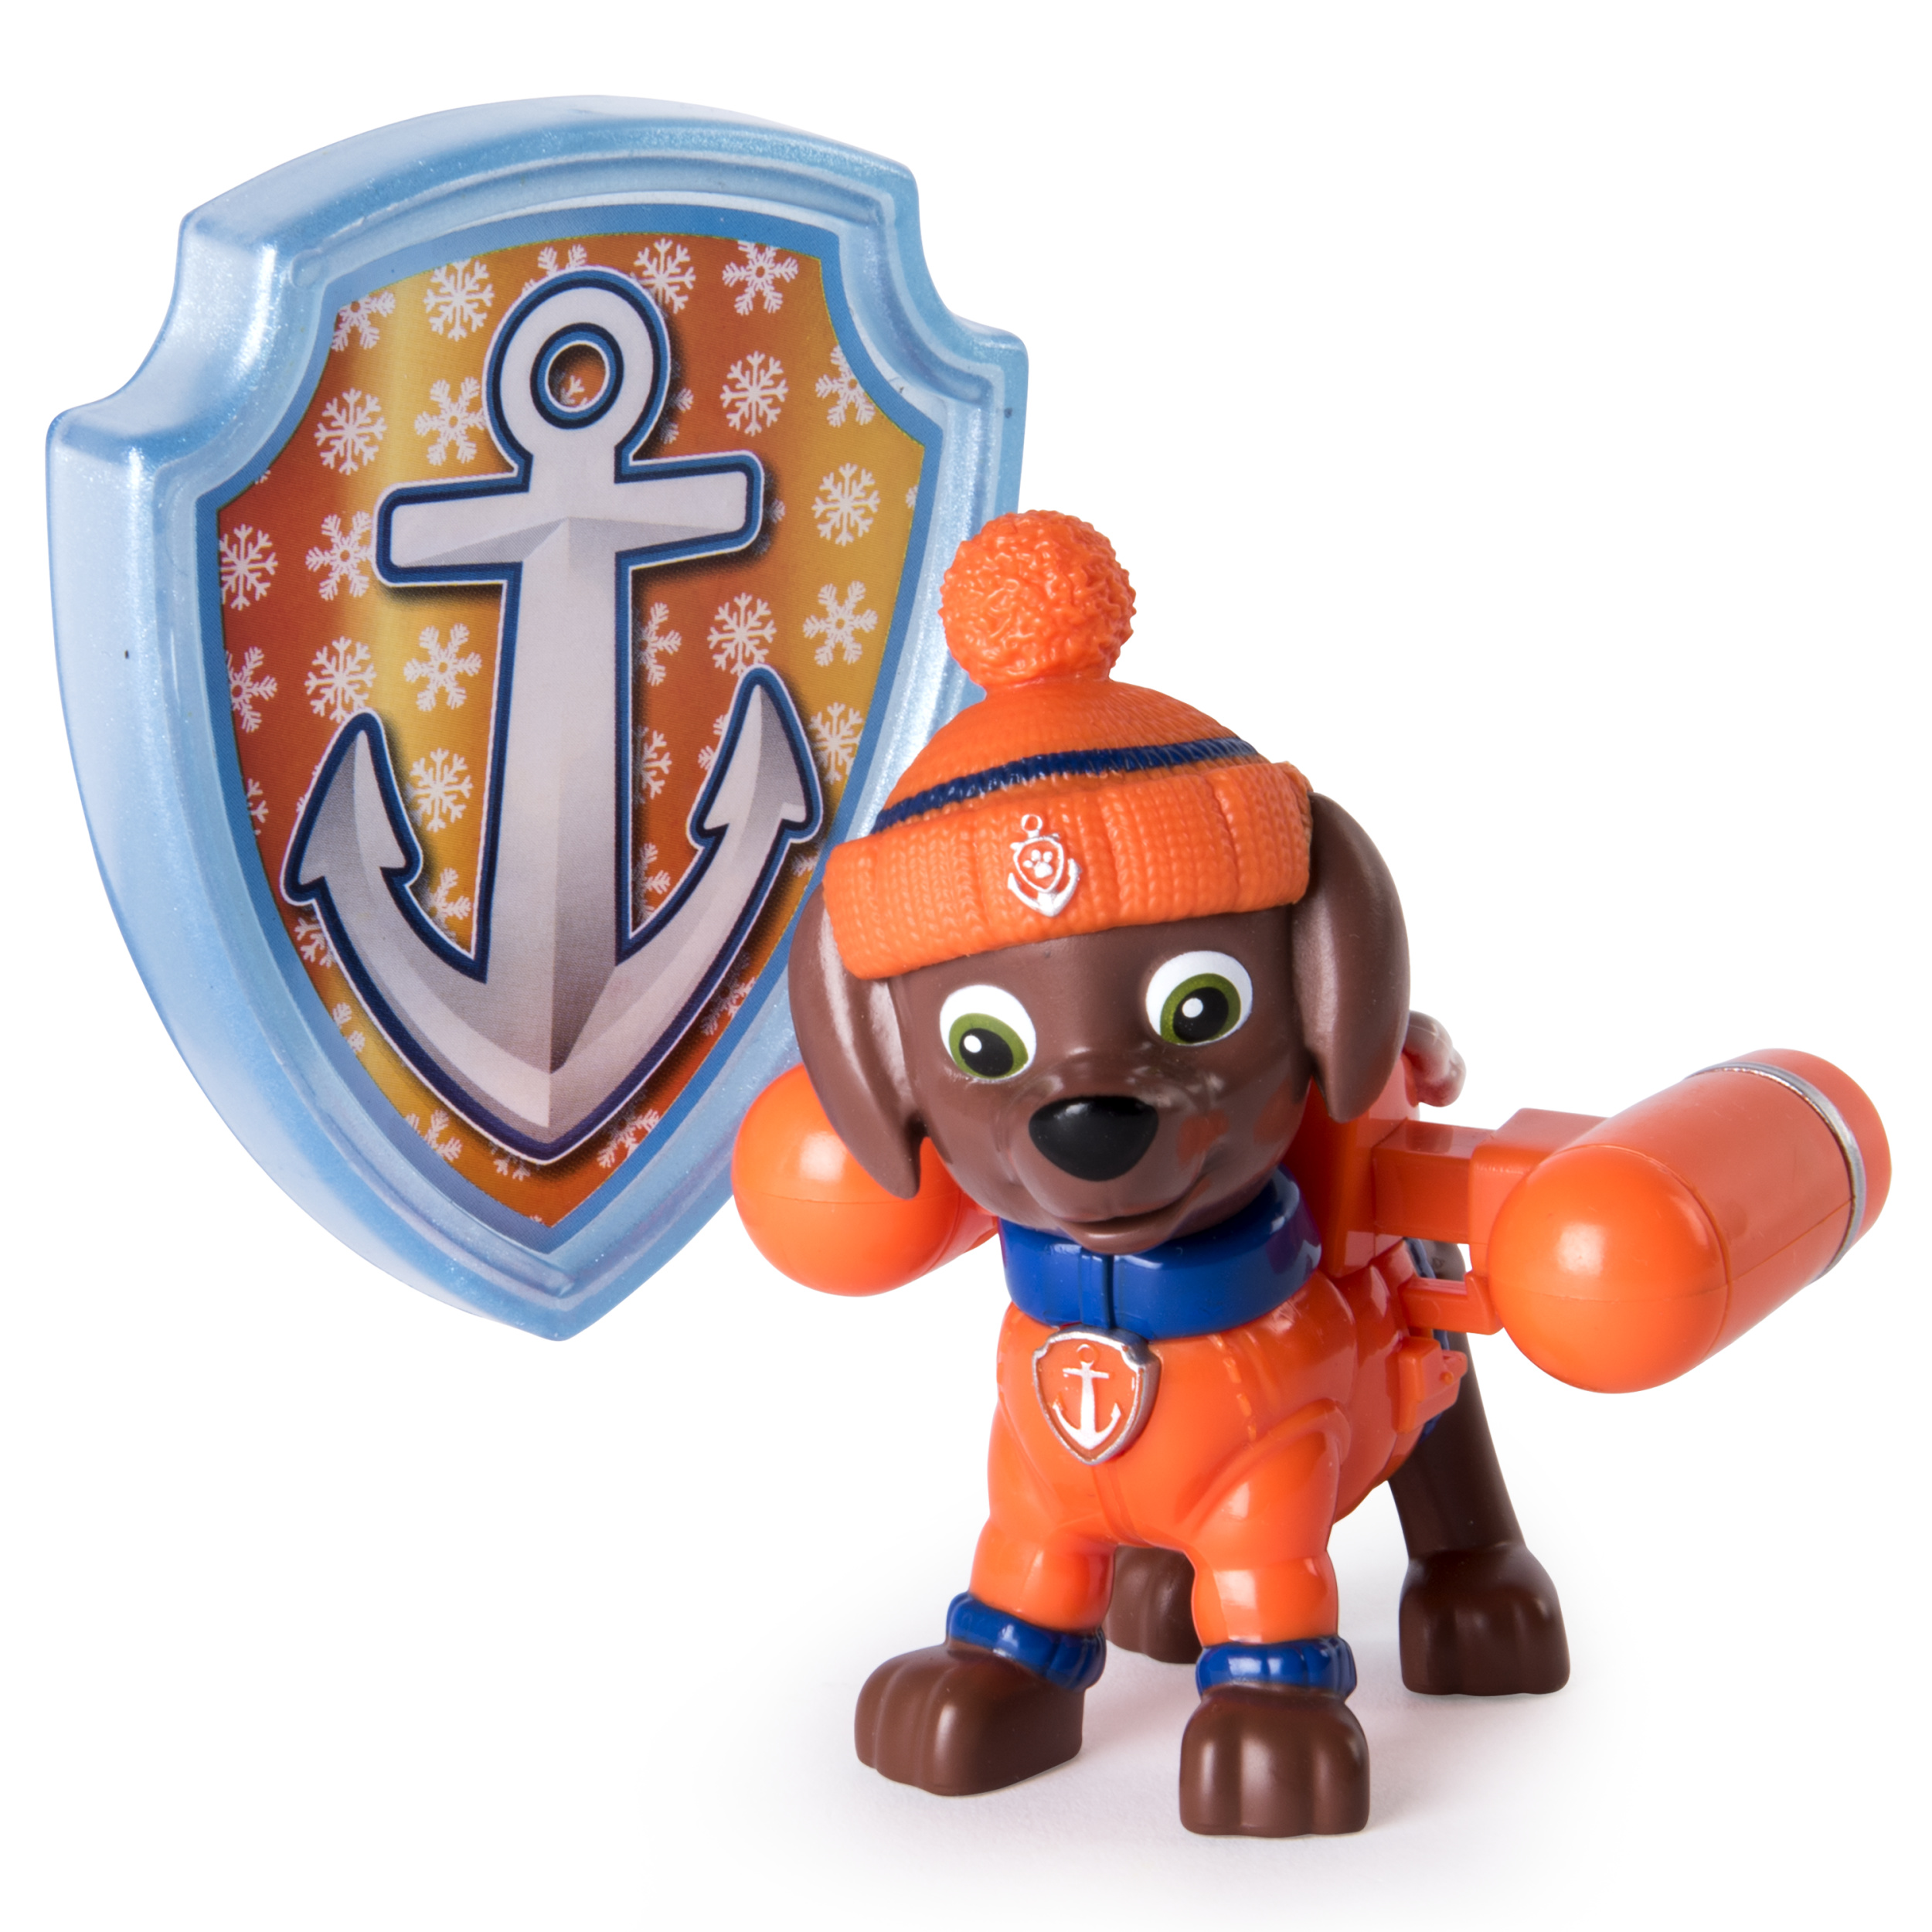 ... Paw Patrol Snow Rescue U2013 Zuma With Transforming Pup Pack And Badge U2013  Walmart Exclusive ...